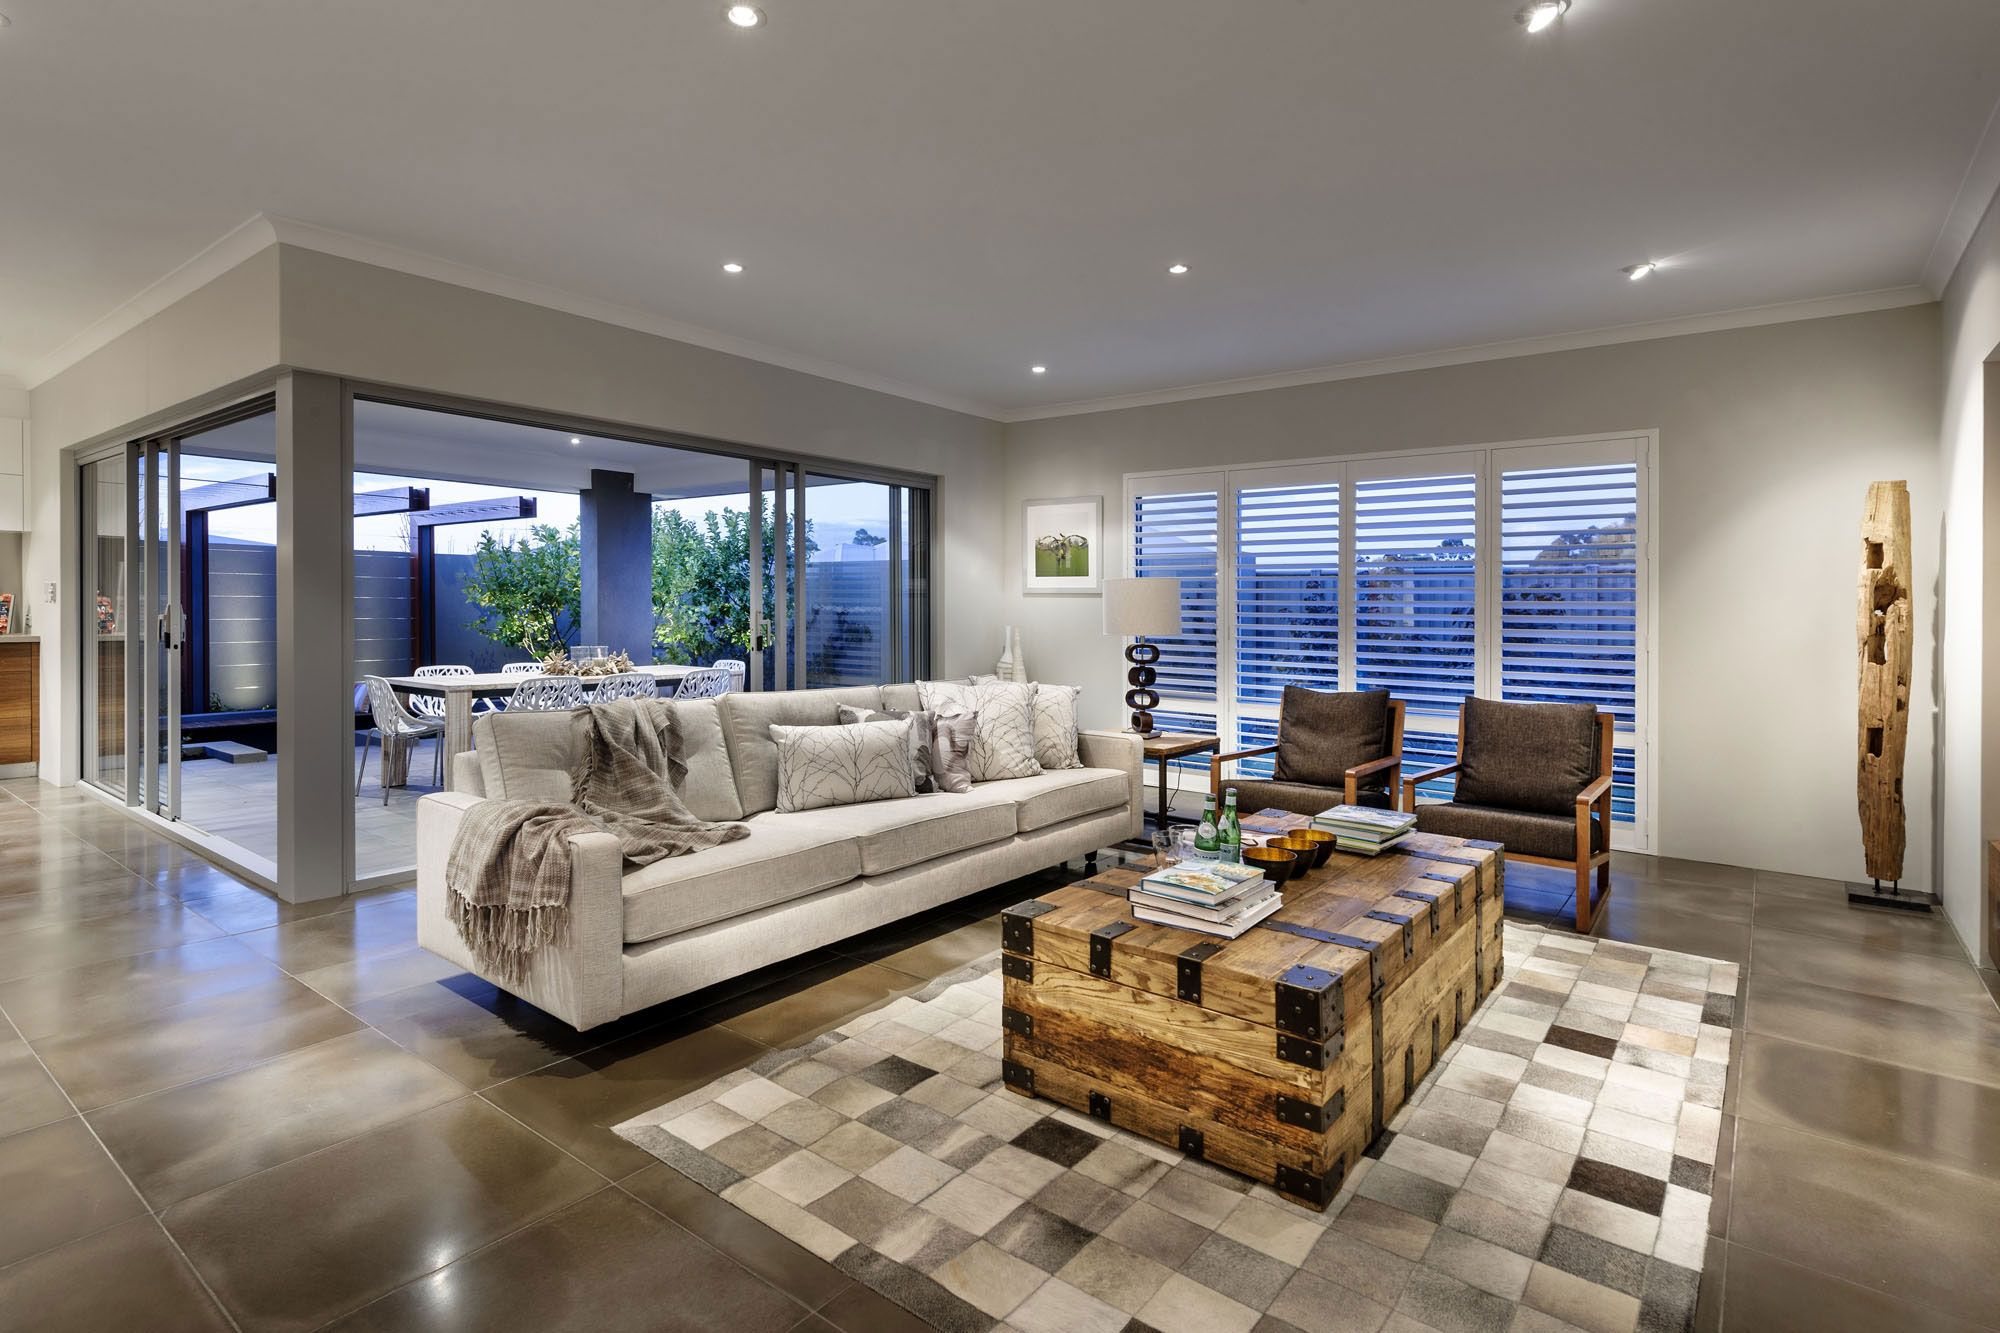 living room furniture perth australia french country decor ideas stylish modern home in wandi roo